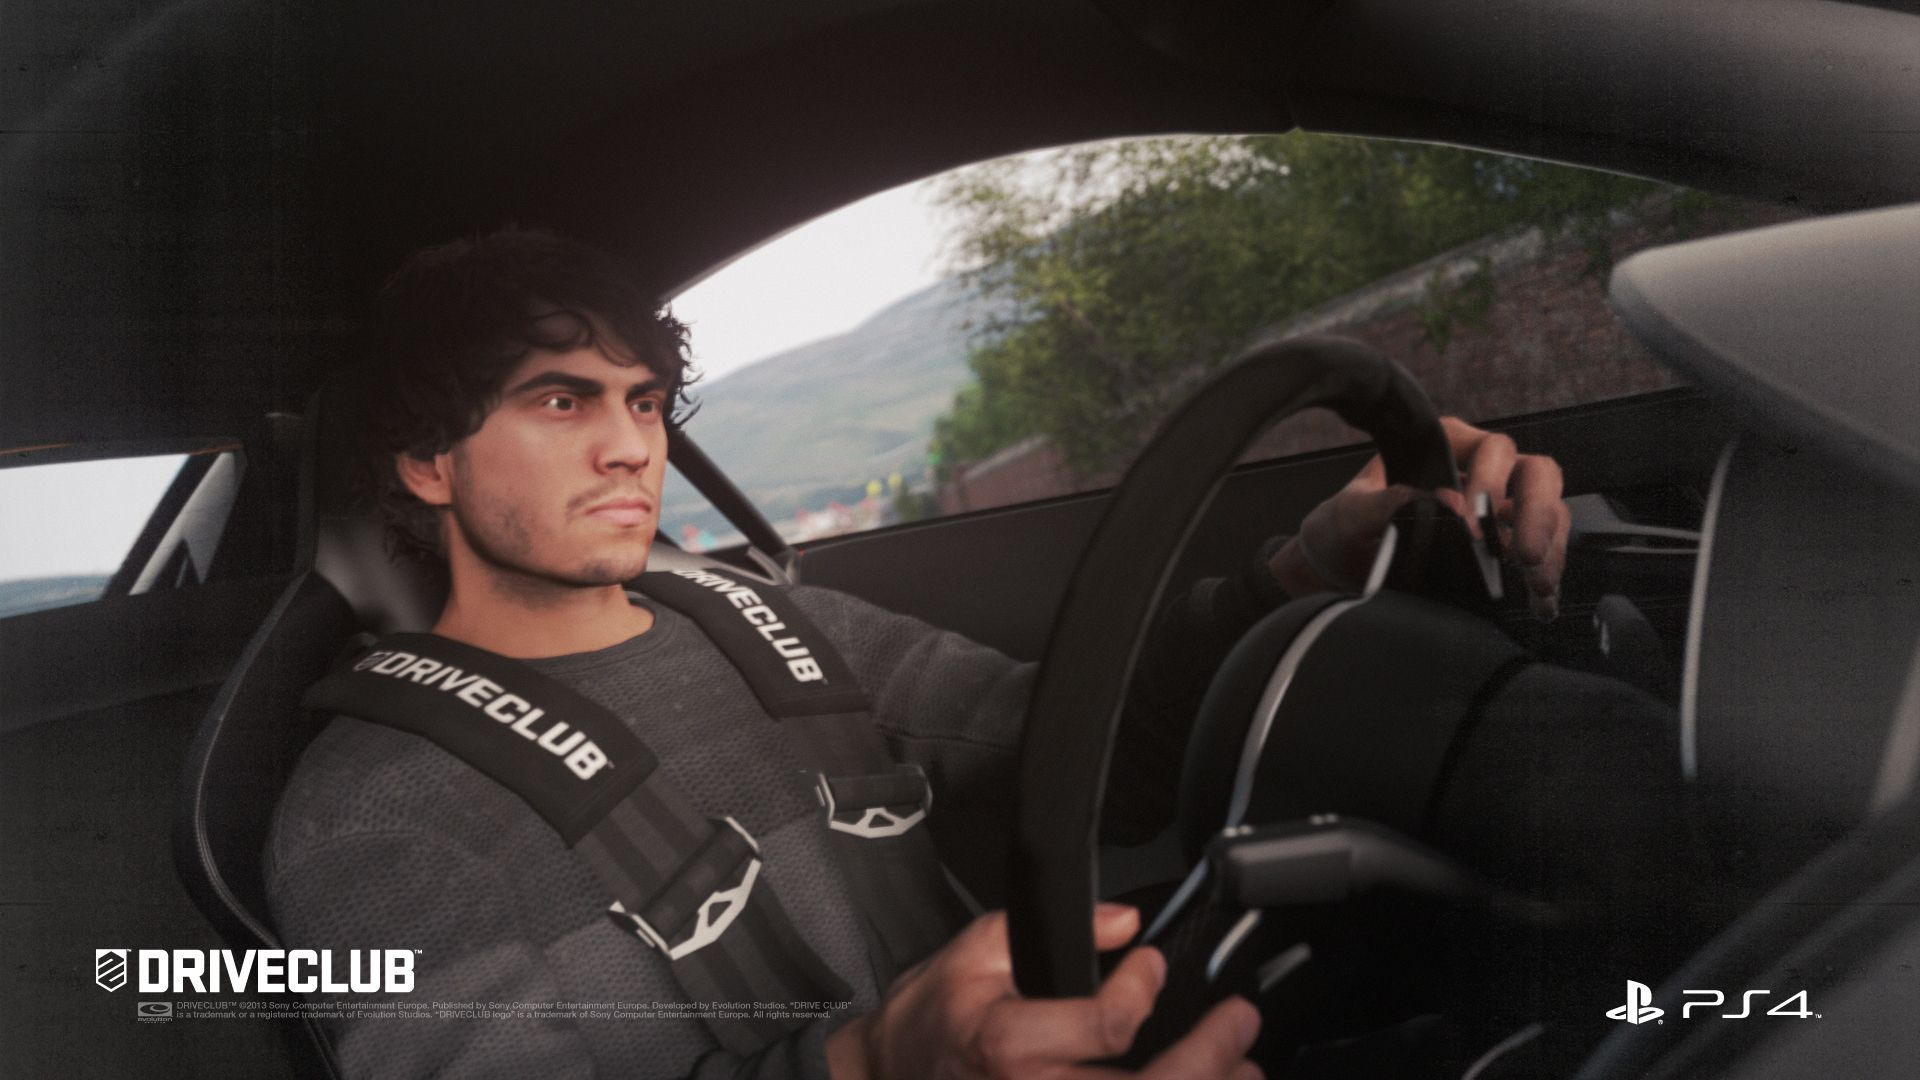 DriveClub (PS4) - 9